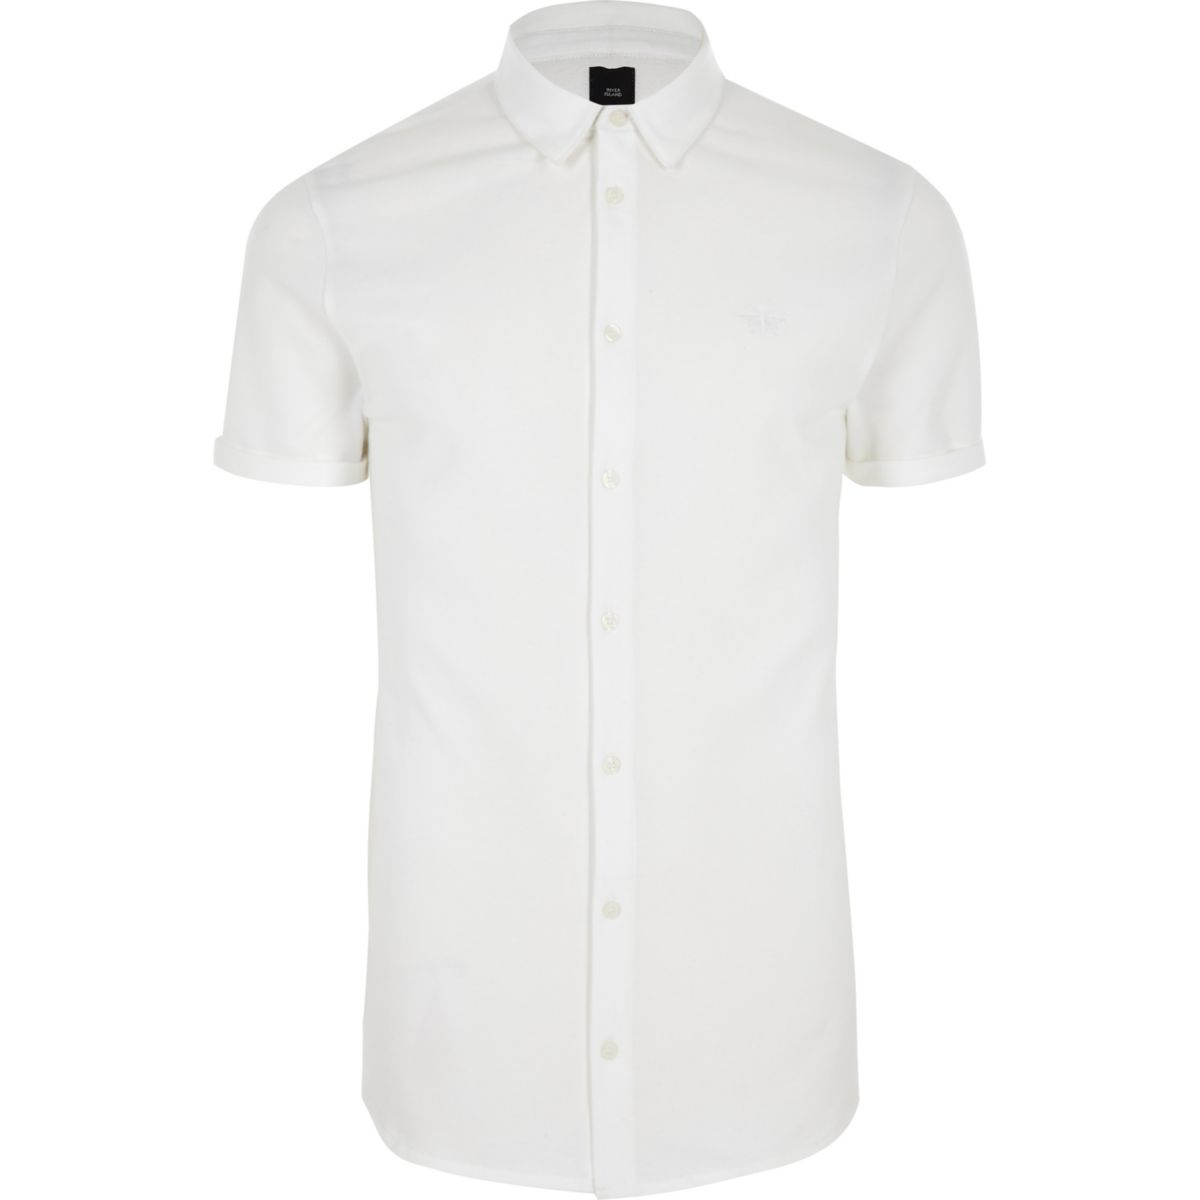 White muscle fit button up shirt